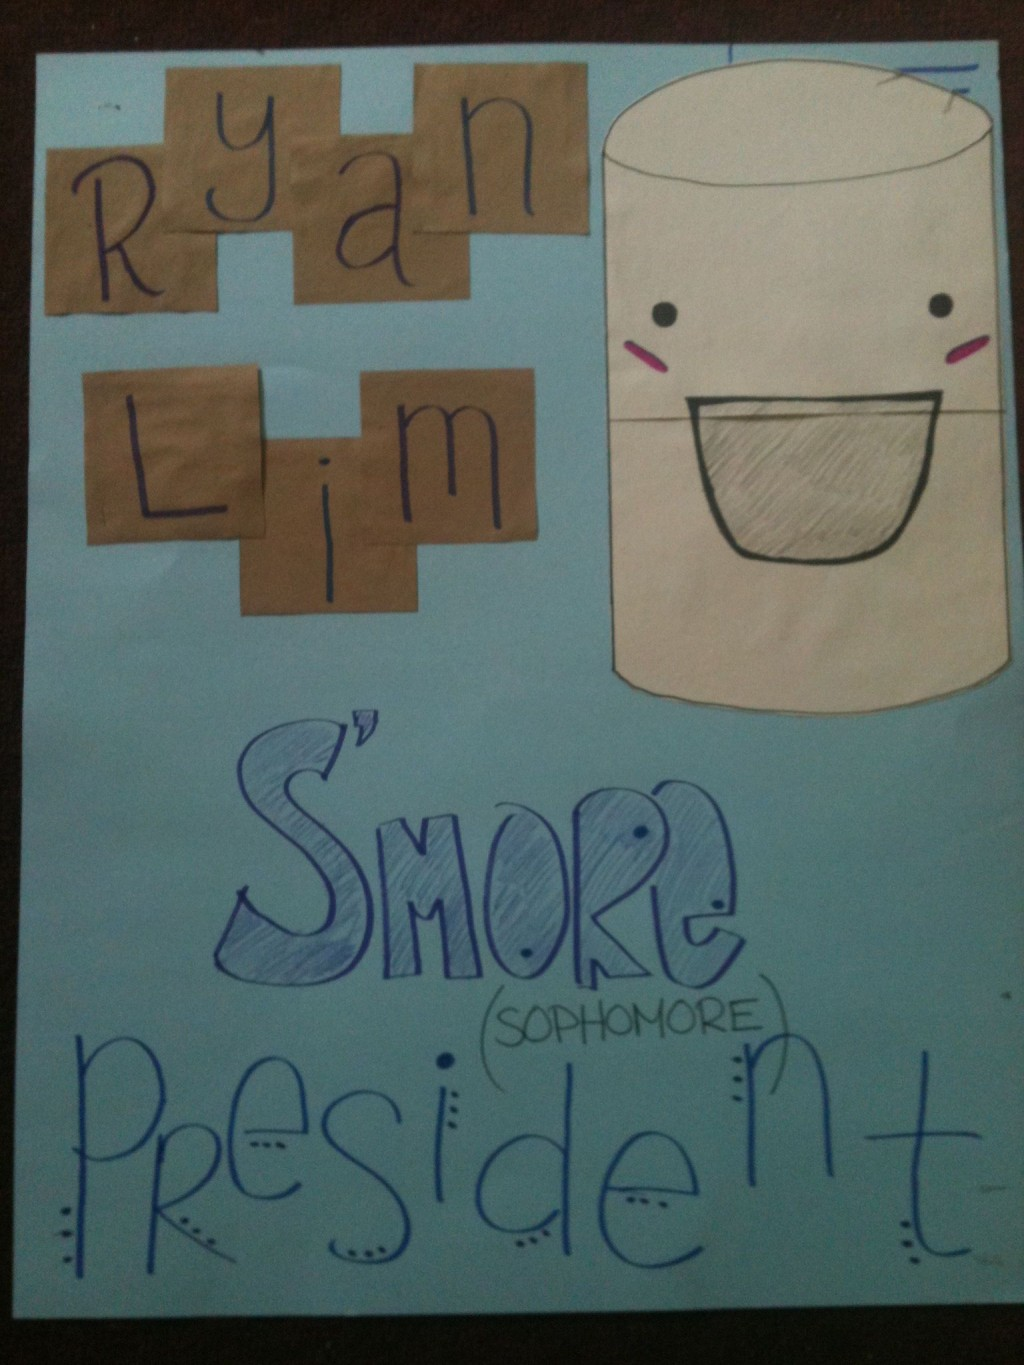 006 Archaicawful Free Student Council Campaign Poster Template Design Large